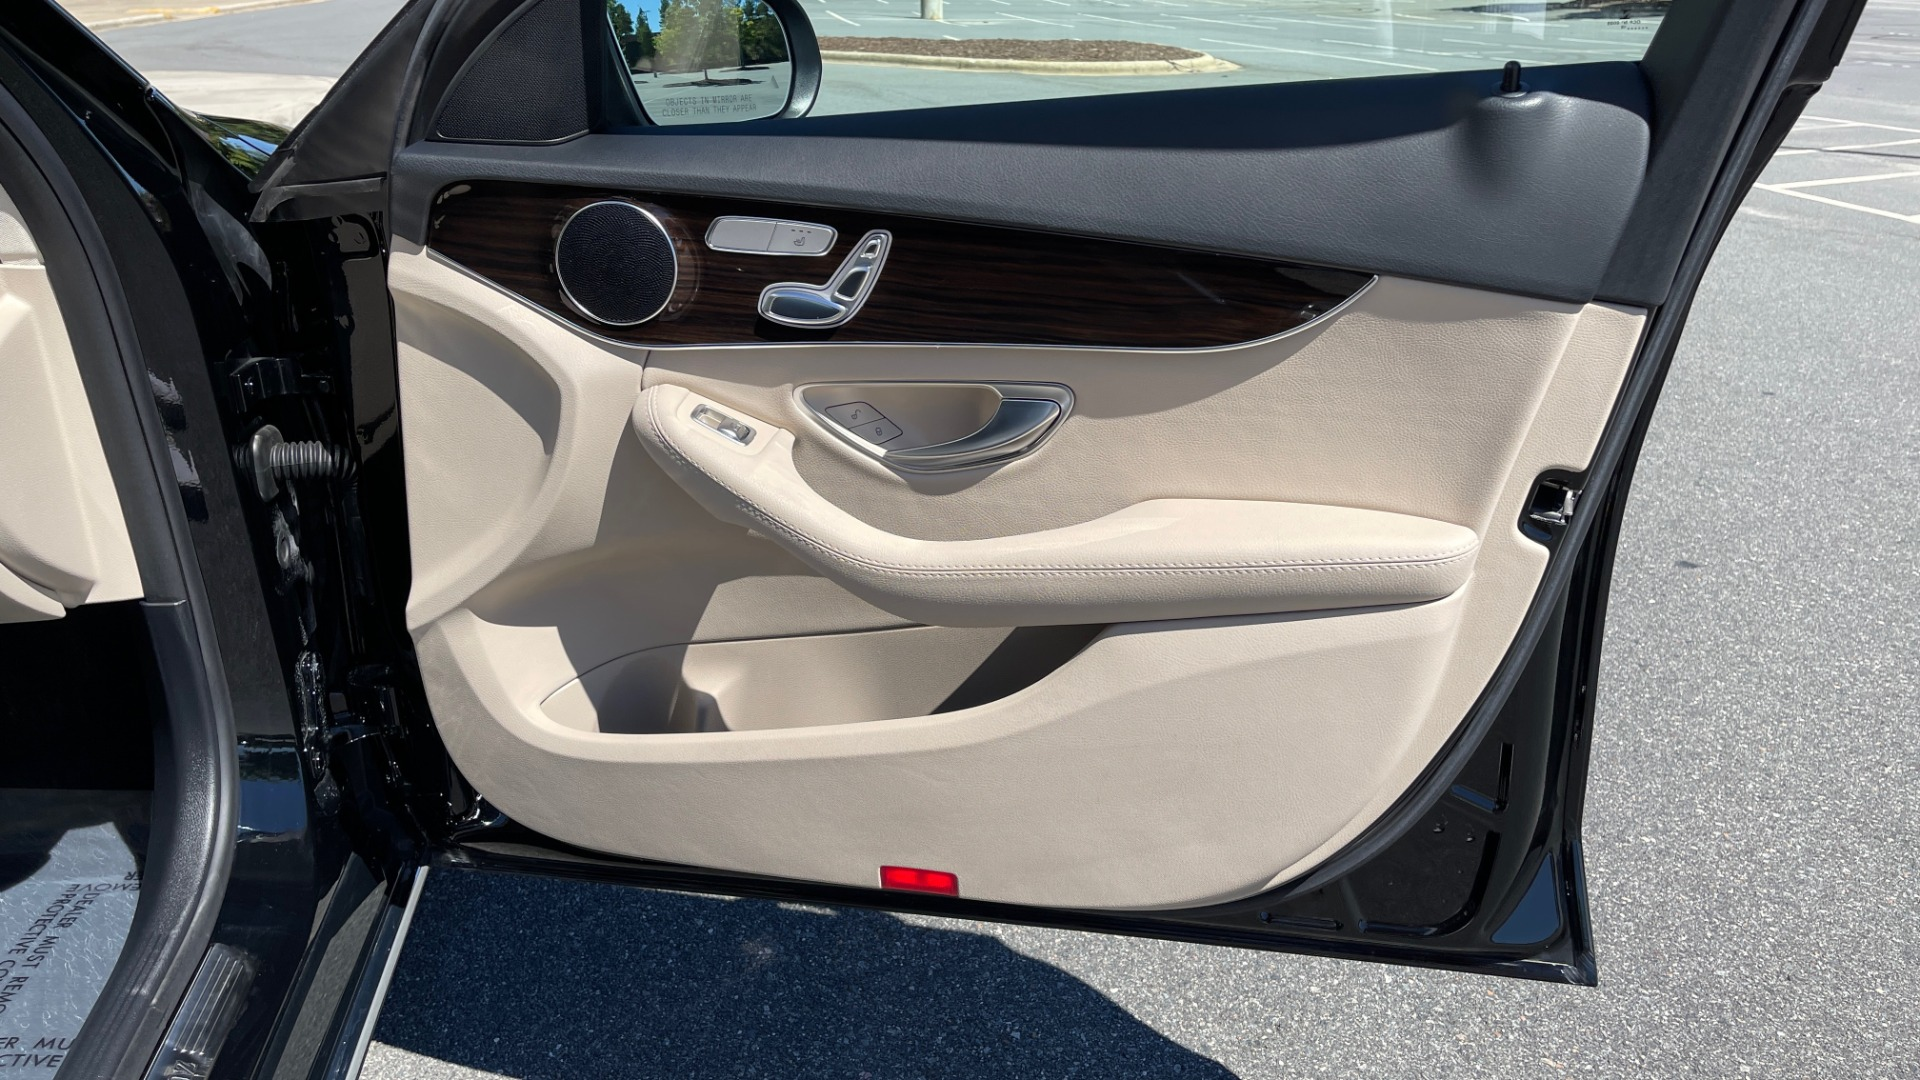 Used 2018 Mercedes-Benz C-CLASS C 300 PREMIUM / APPLE CARPLAY / SUNROOF / REARVIEW for sale $31,995 at Formula Imports in Charlotte NC 28227 54